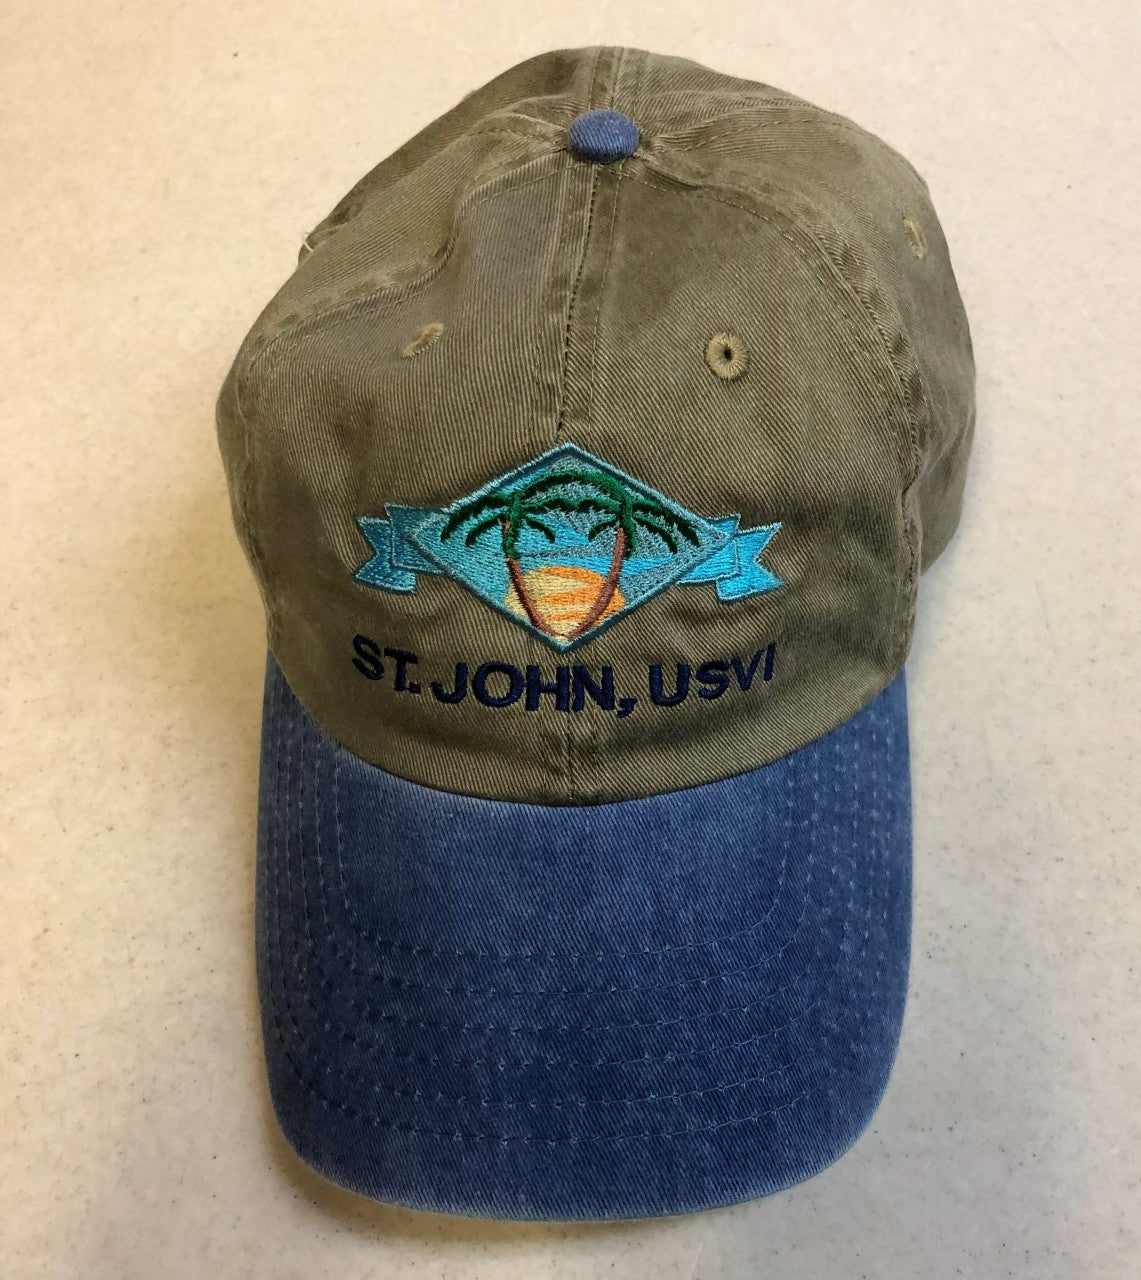 St. John Baseball Cap with Palm Trees, Olive and Indigo Blue